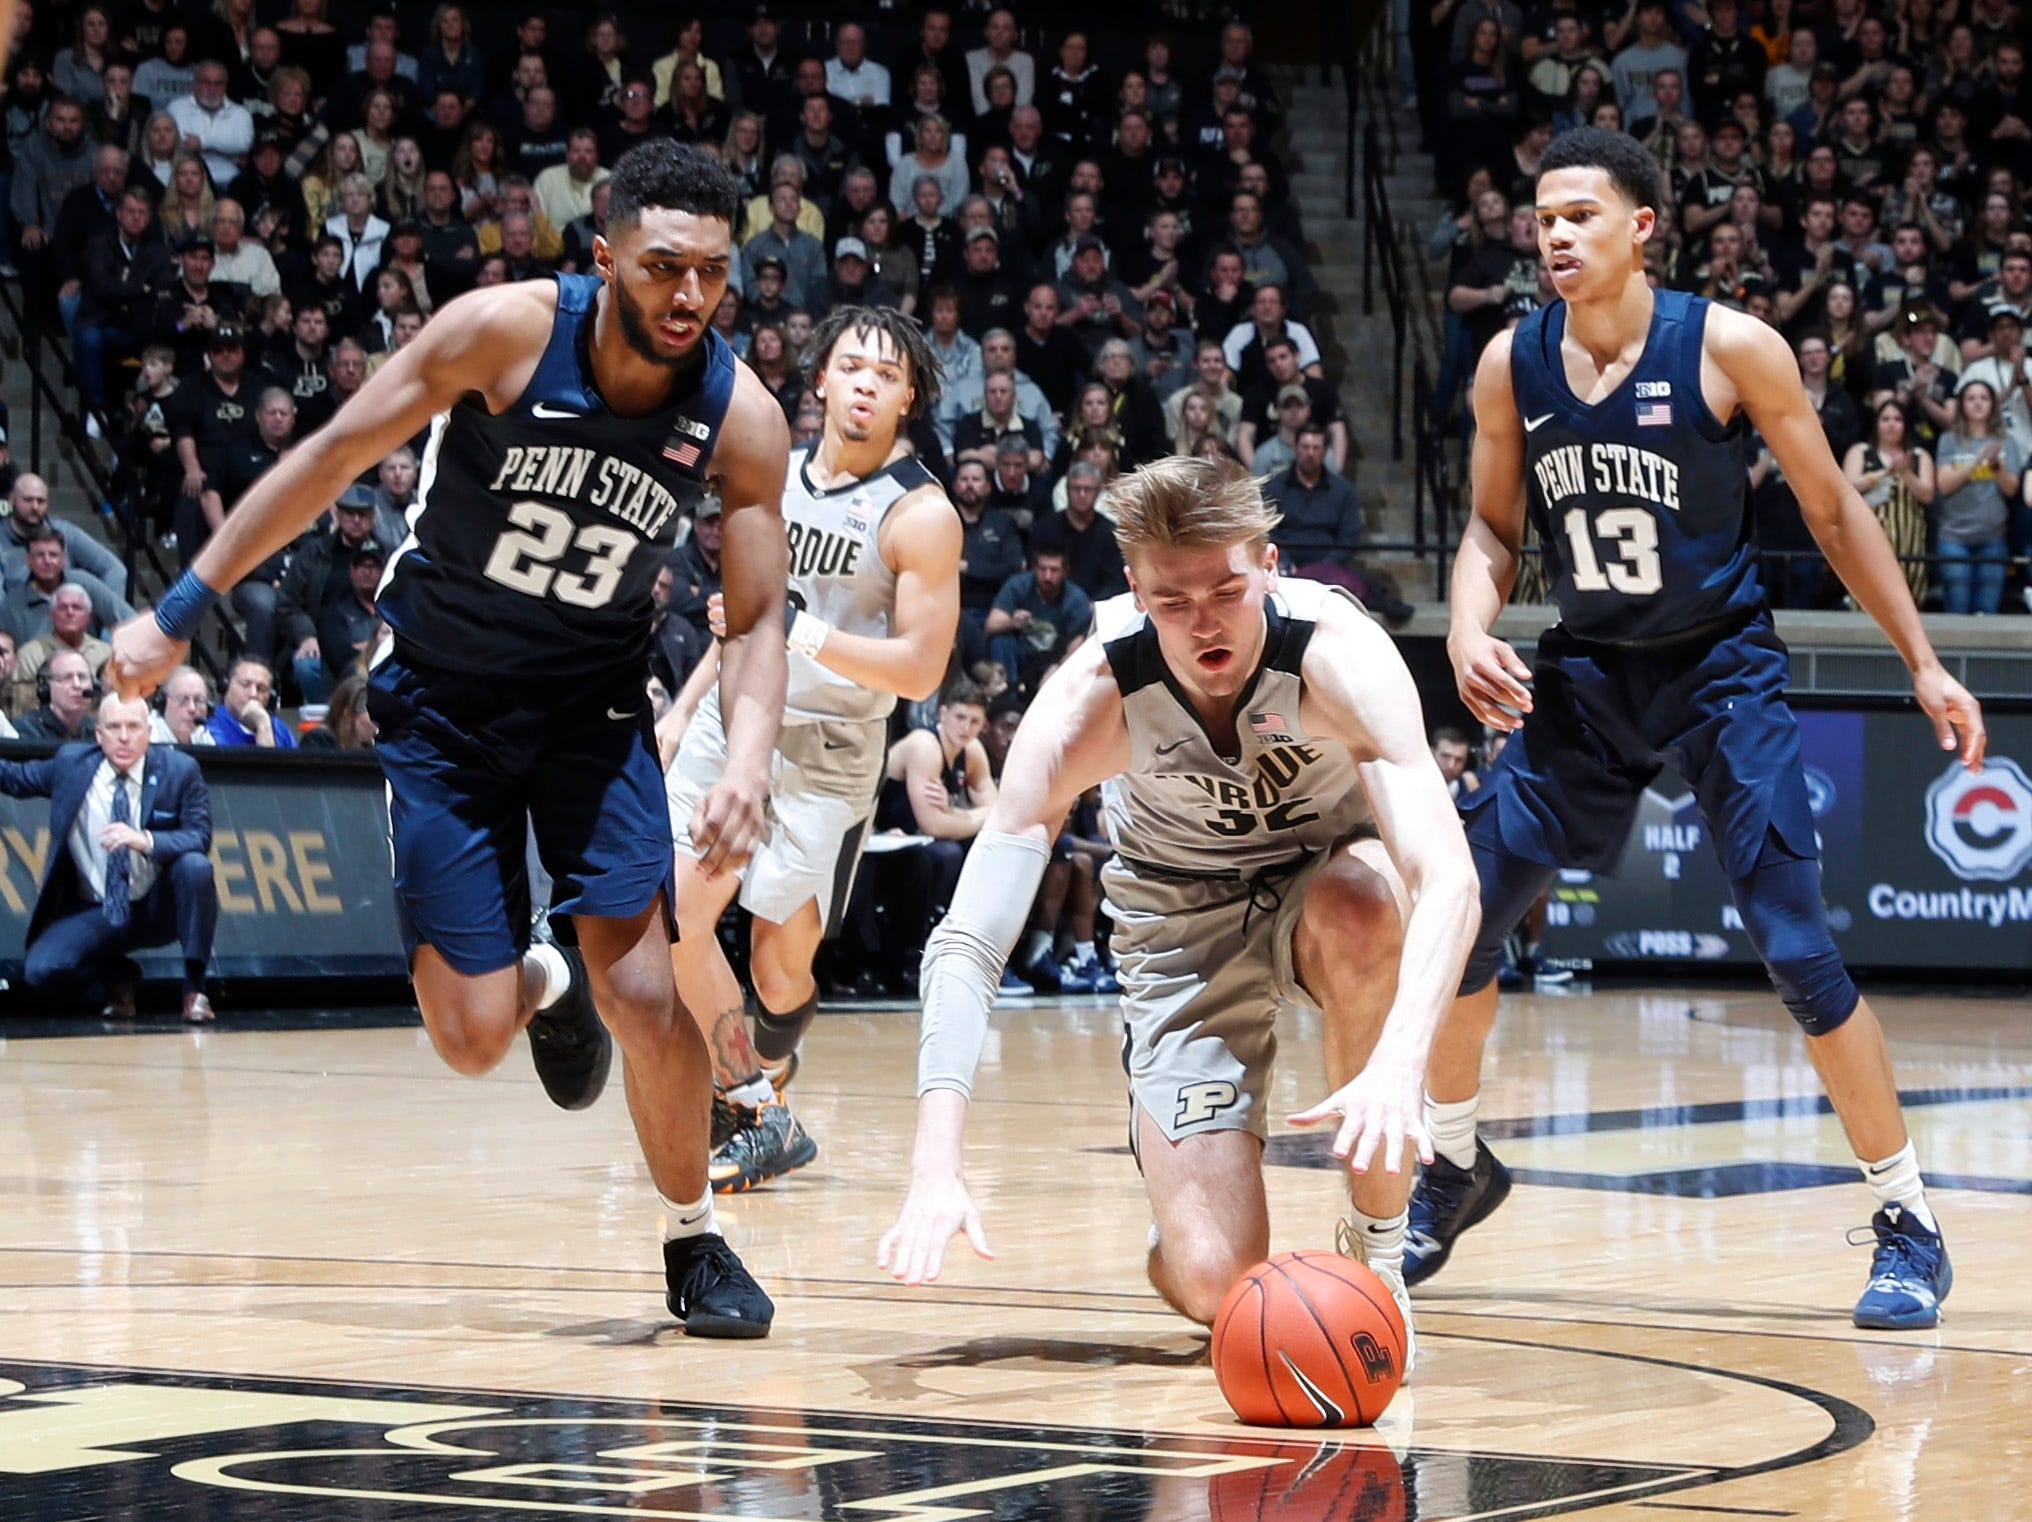 Purdue Boilermakers center Matt Haarms (32) is fouled as he drives to the basket against Penn State Nittany Lions guard Josh Reaves (23) during the second half at Mackey Arena.